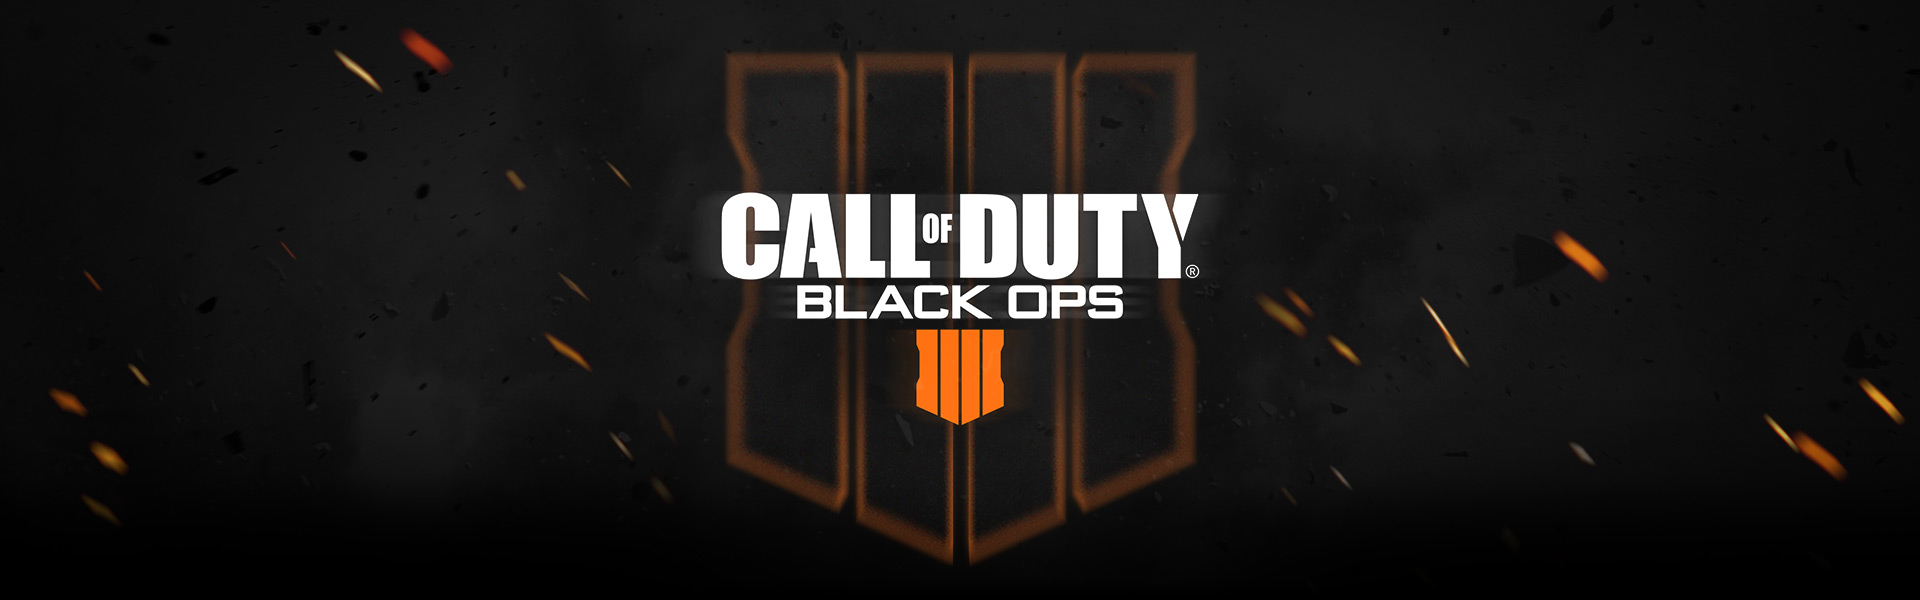 Call of Duty: Black Ops 4 logo surrounded by smoke and embers